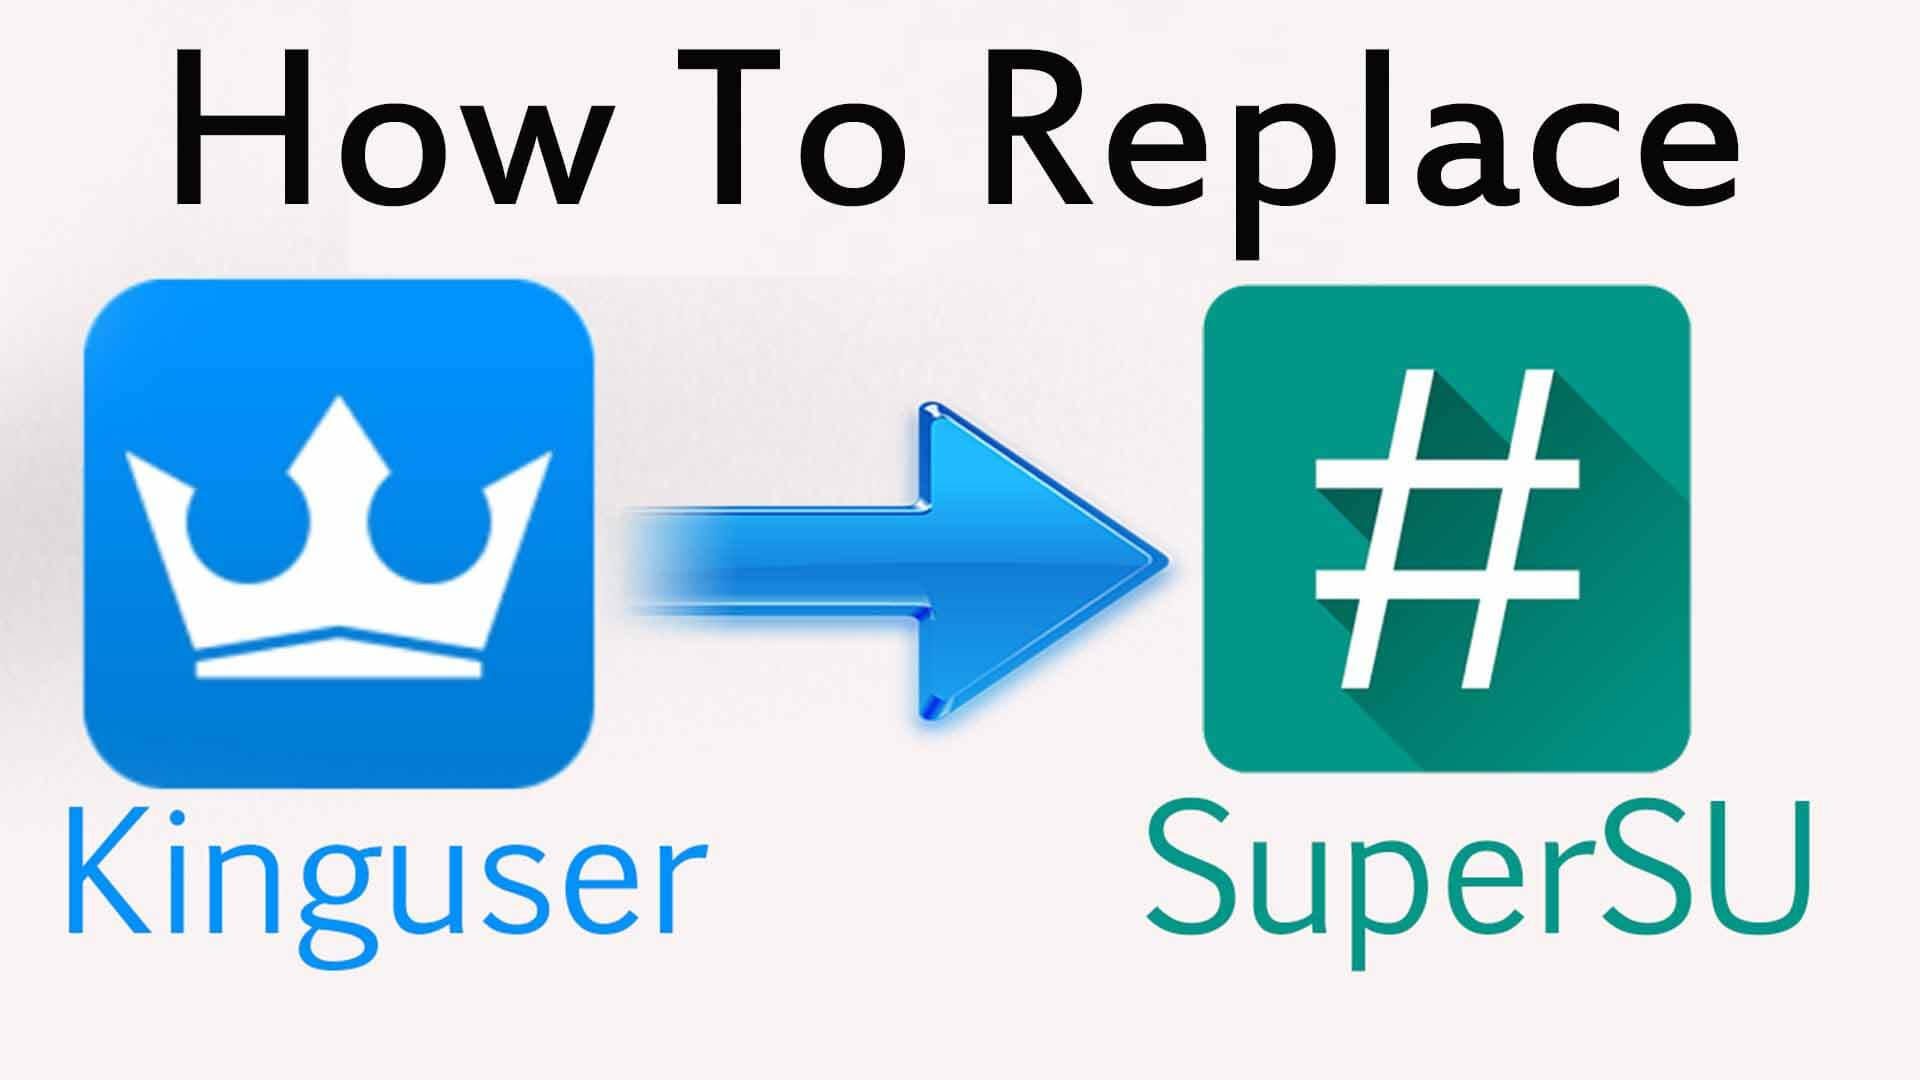 Replace KingUser with SuperSu